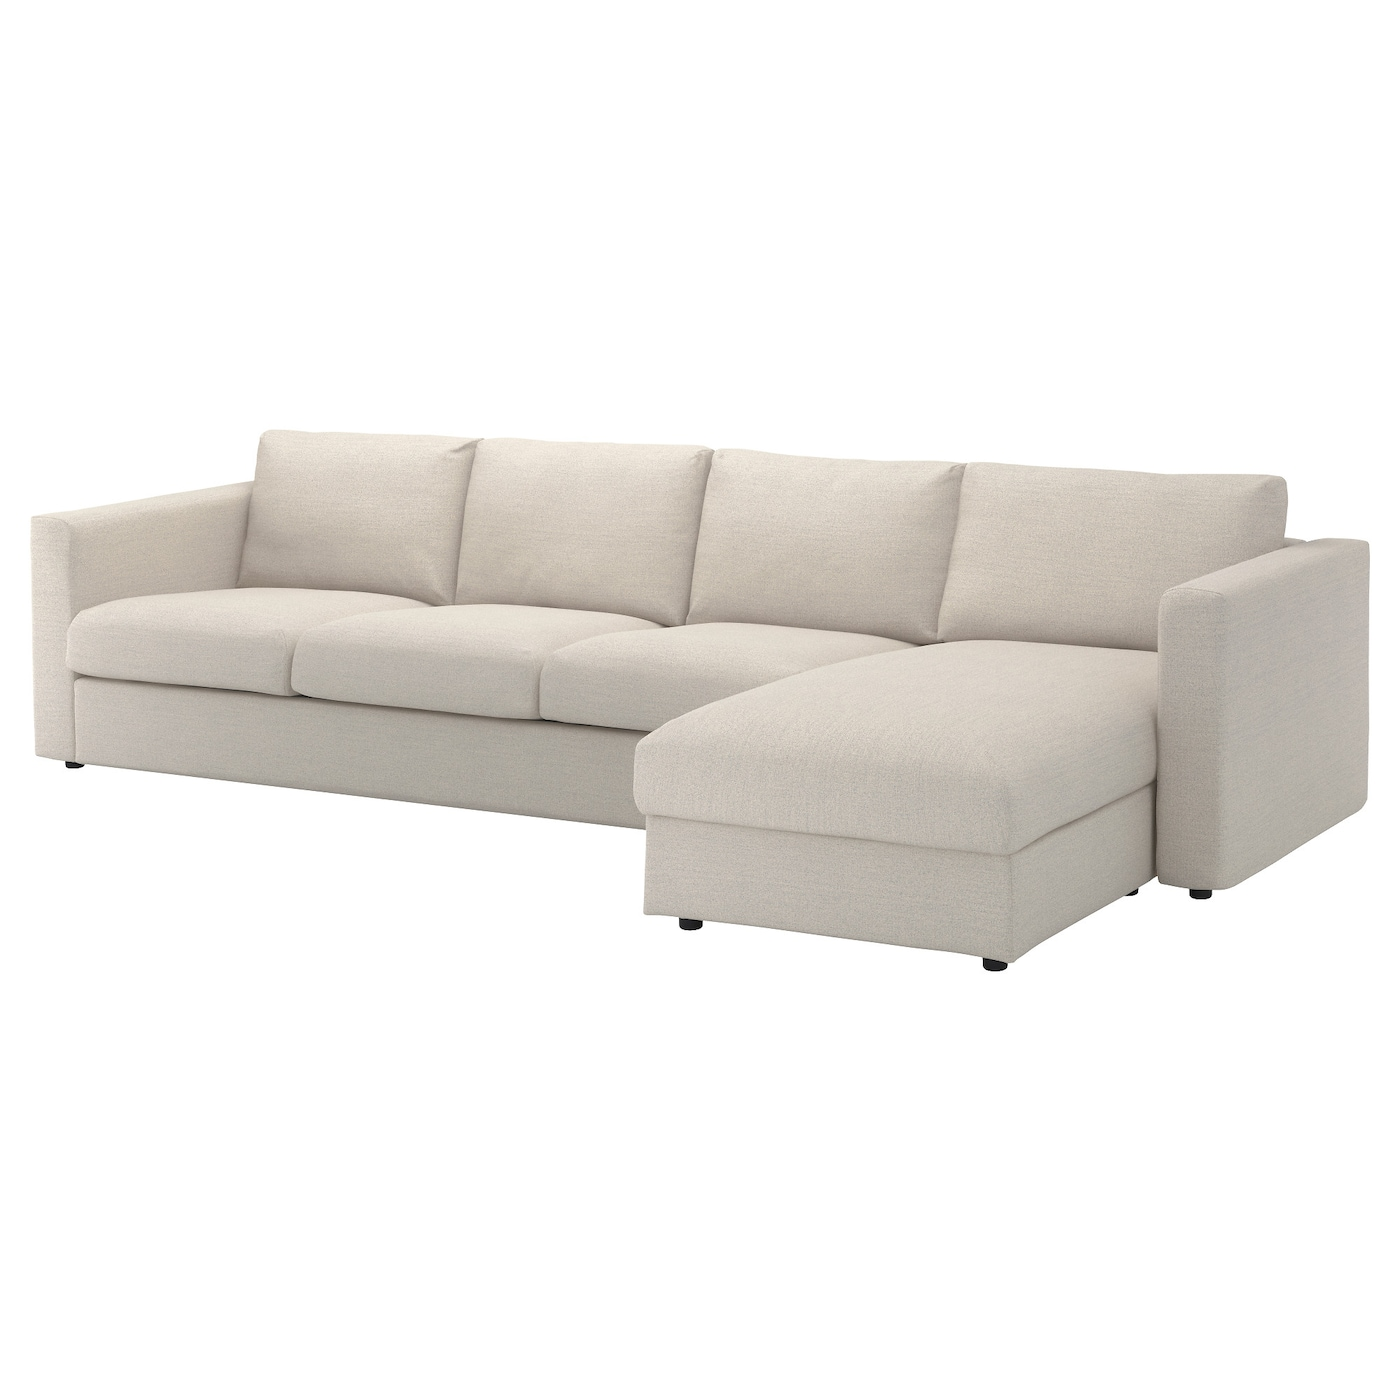 Vimle 4 seat sofa with chaise longue gunnared beige ikea for 4 seat sectional sofa chaise